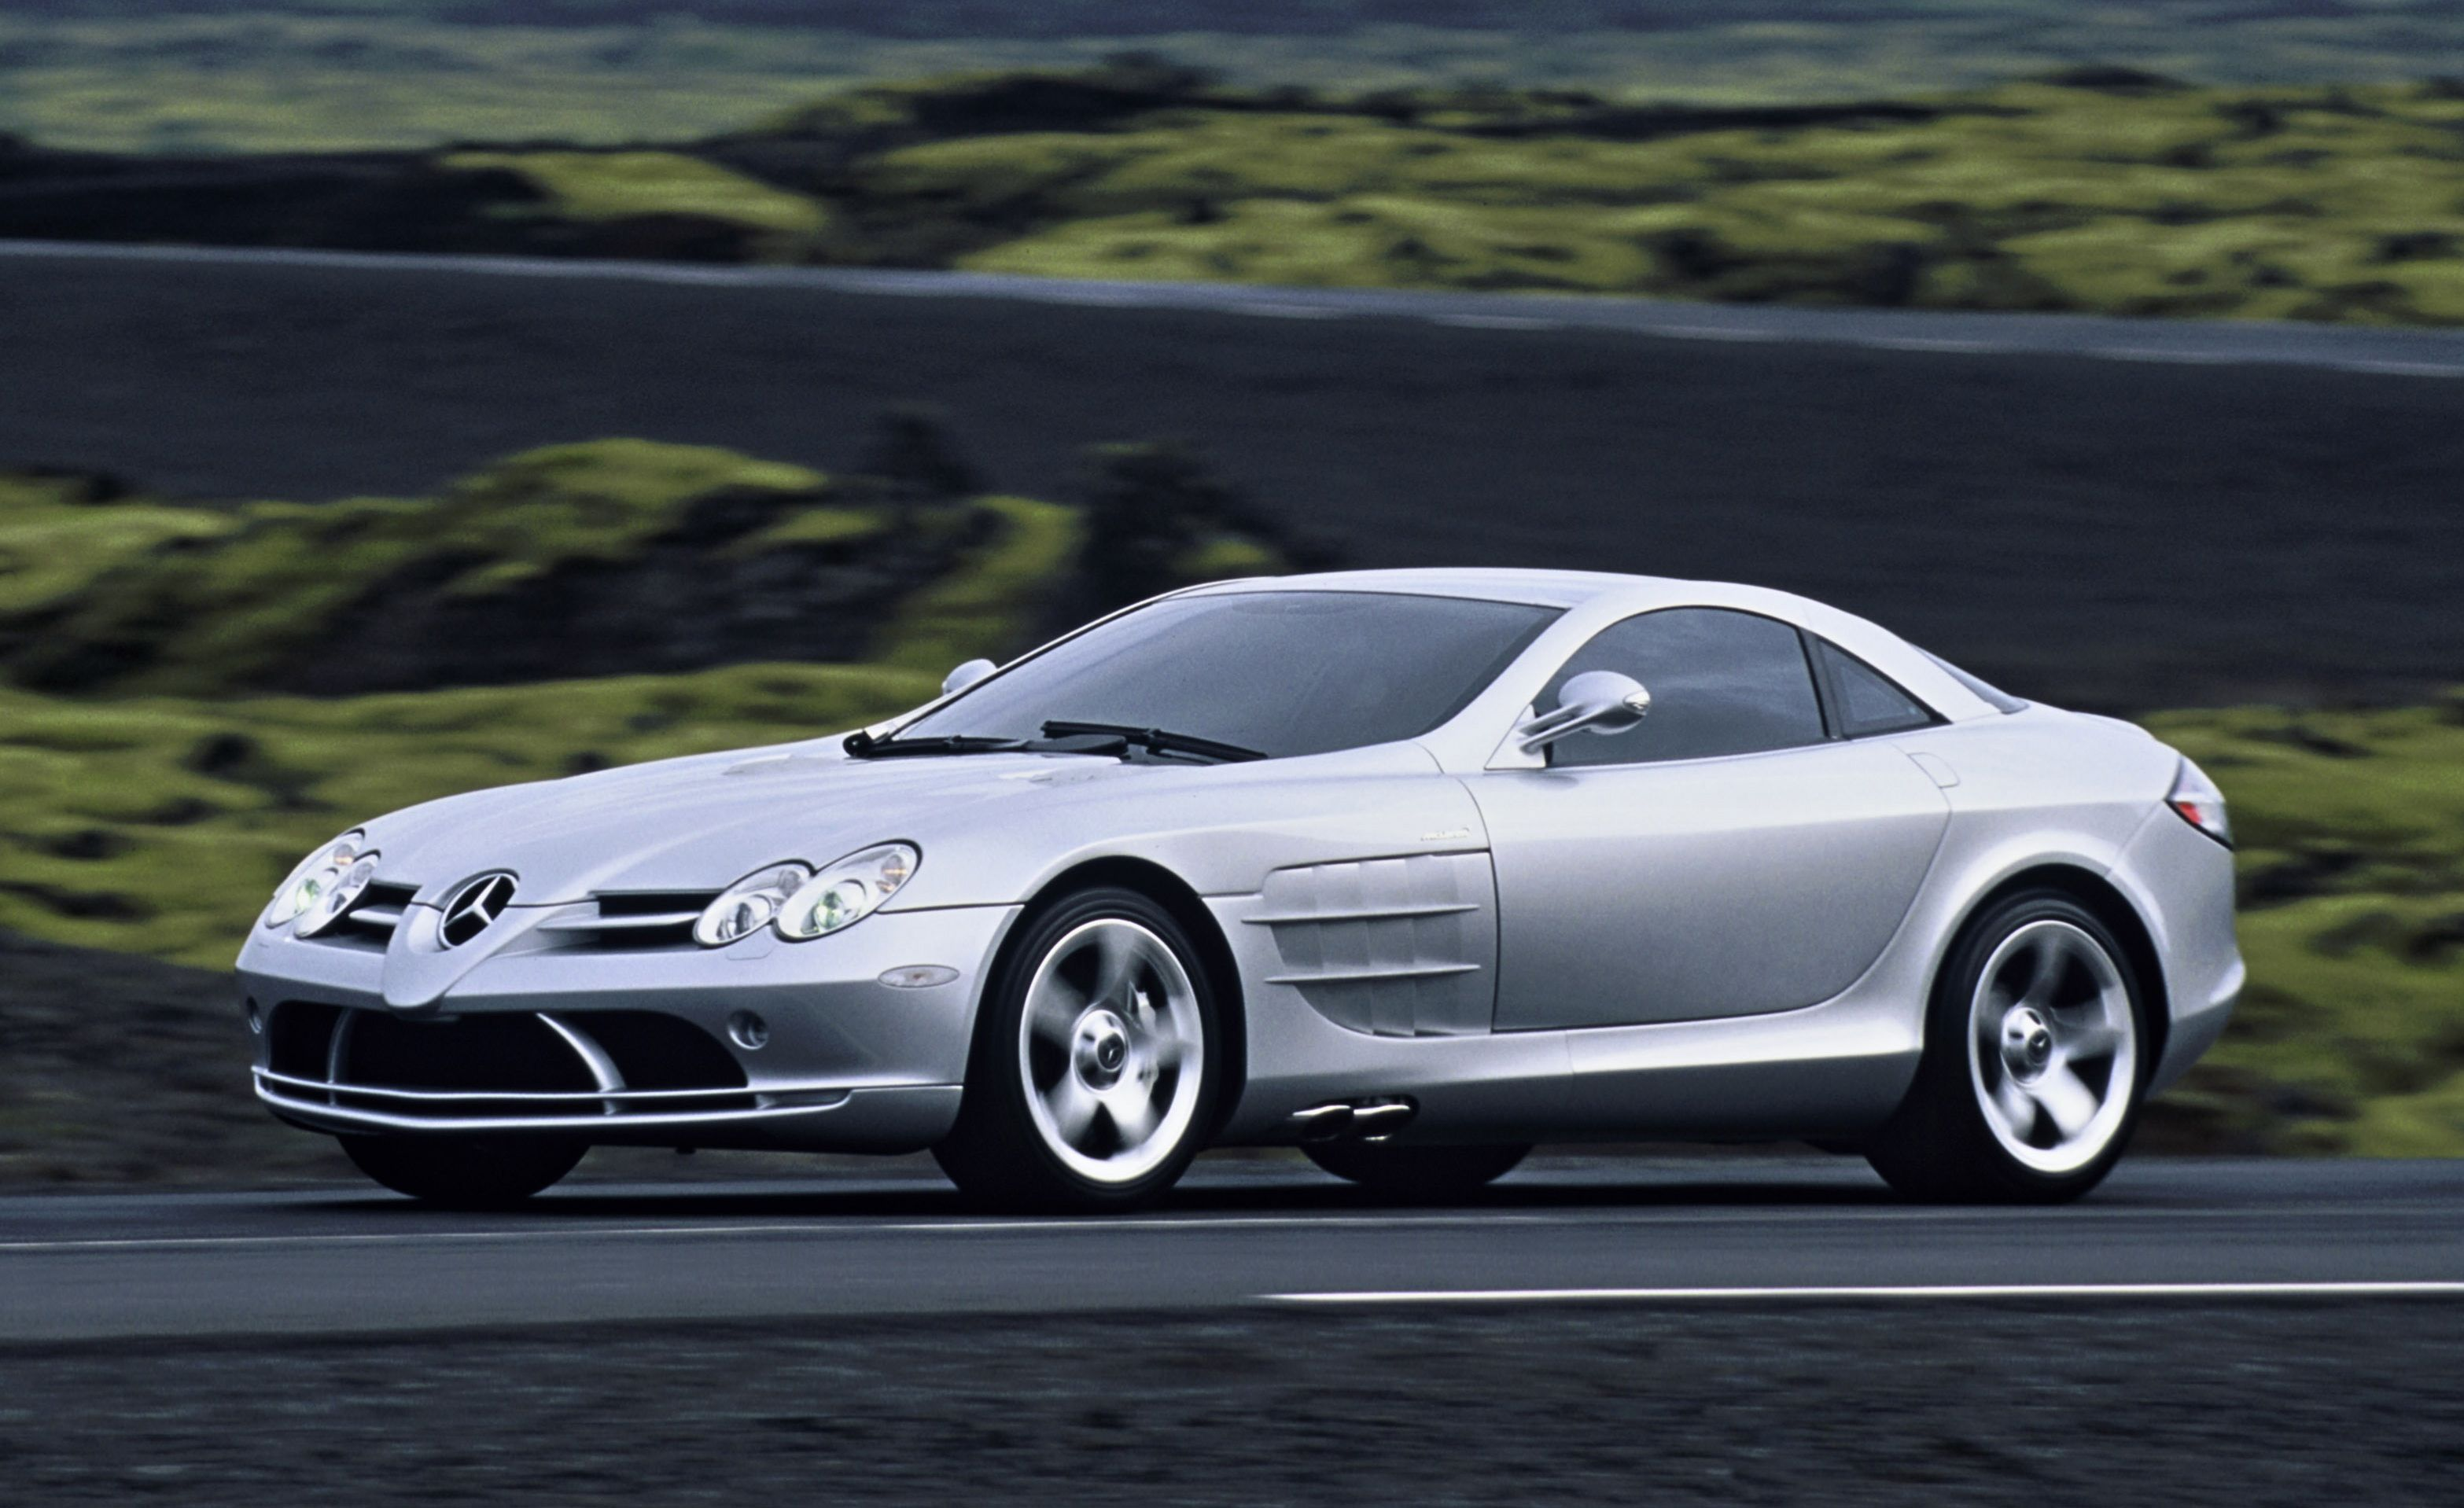 How Much Does It Cost >> Mercedes-Benz SLR McLaren